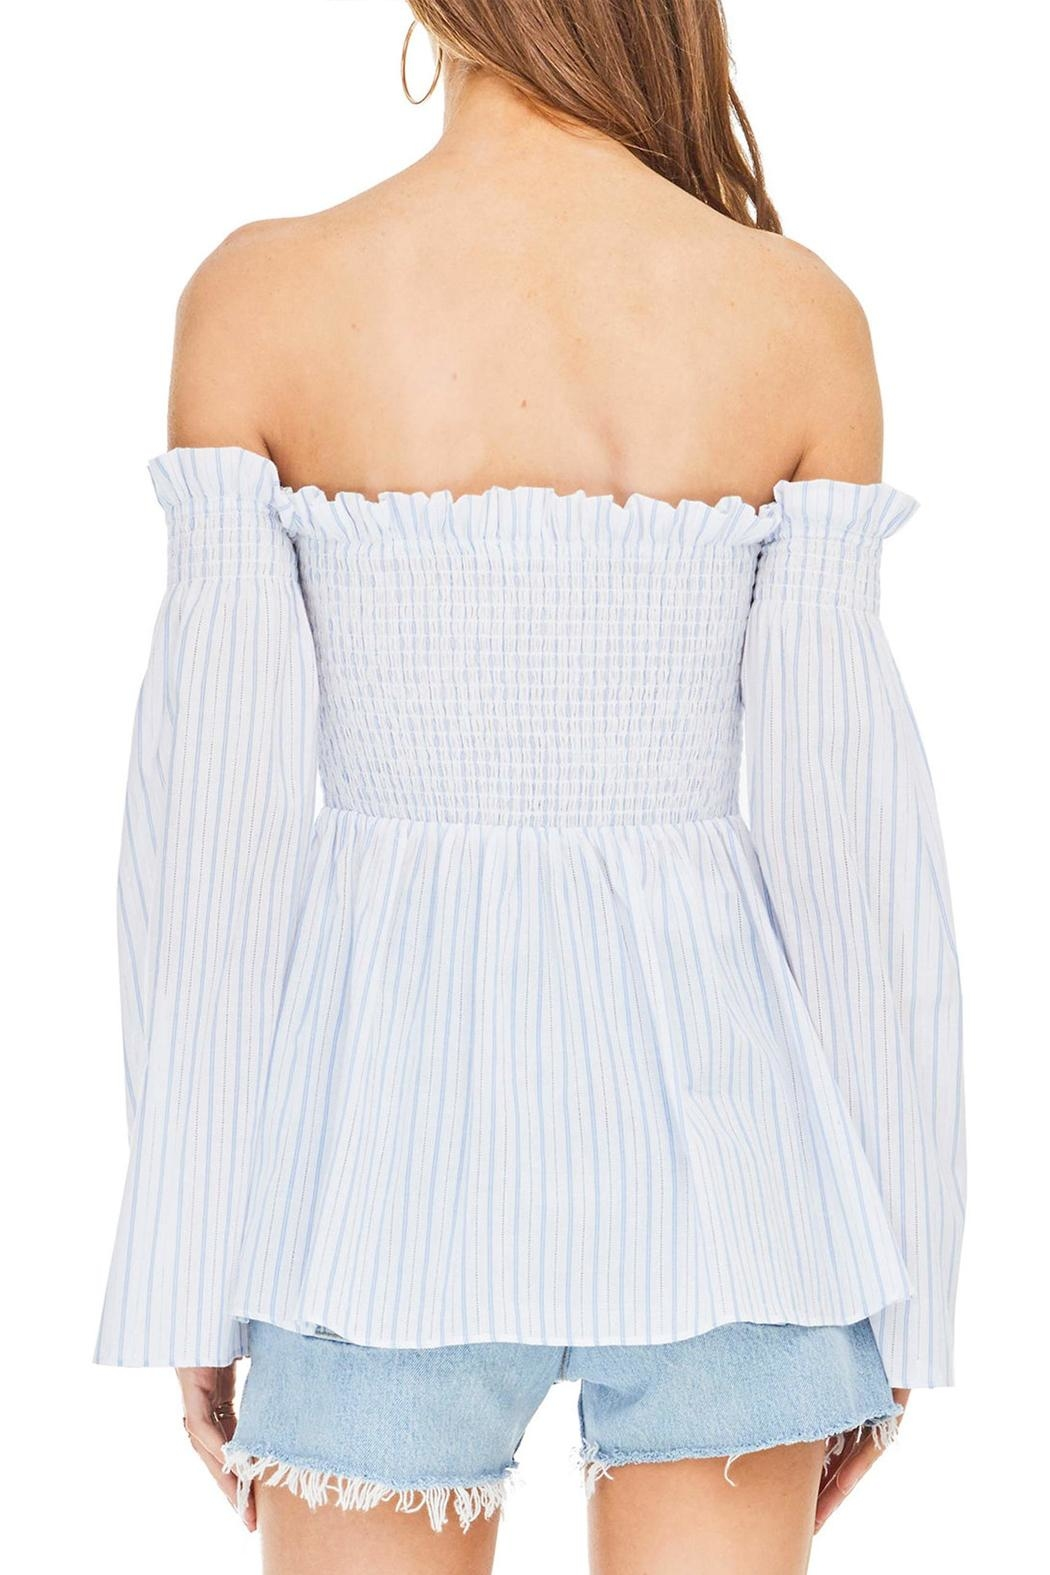 ASTR Shelby Smocked Top - Side Cropped Image